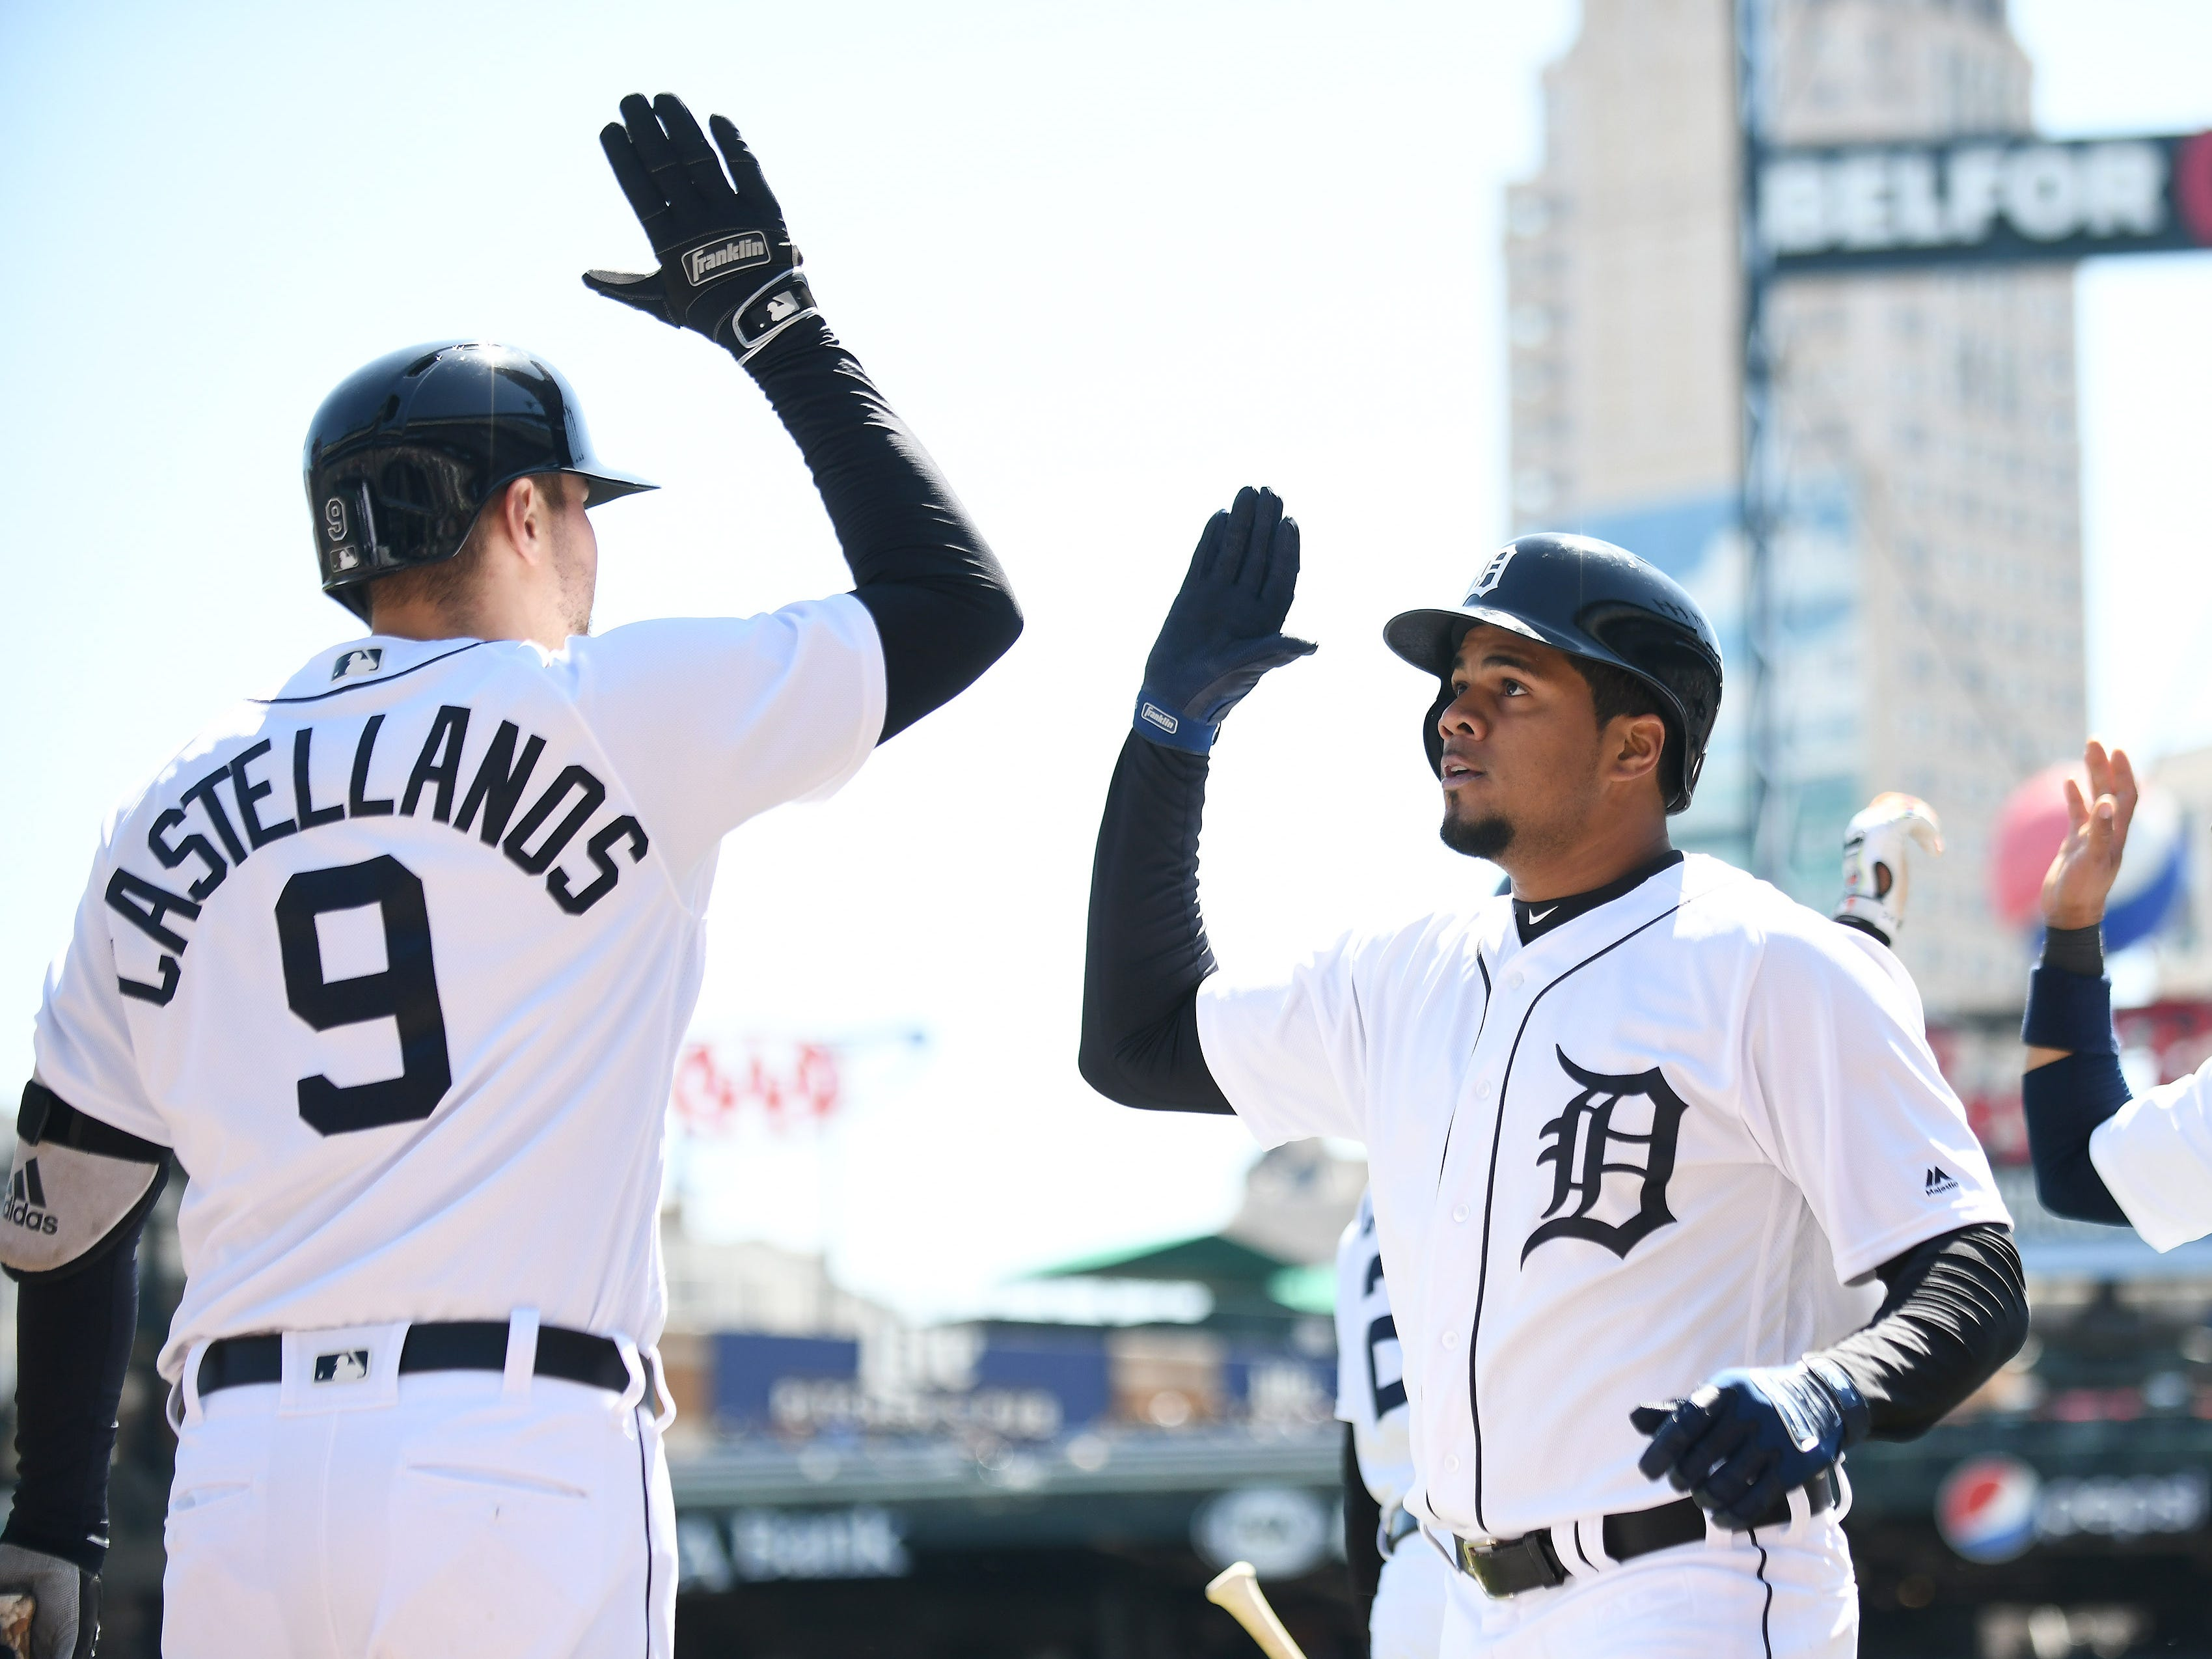 Go through the gallery to see The Detroit News' final grades for the 2018 Detroit Tigers, compiled by Chris McCosky.